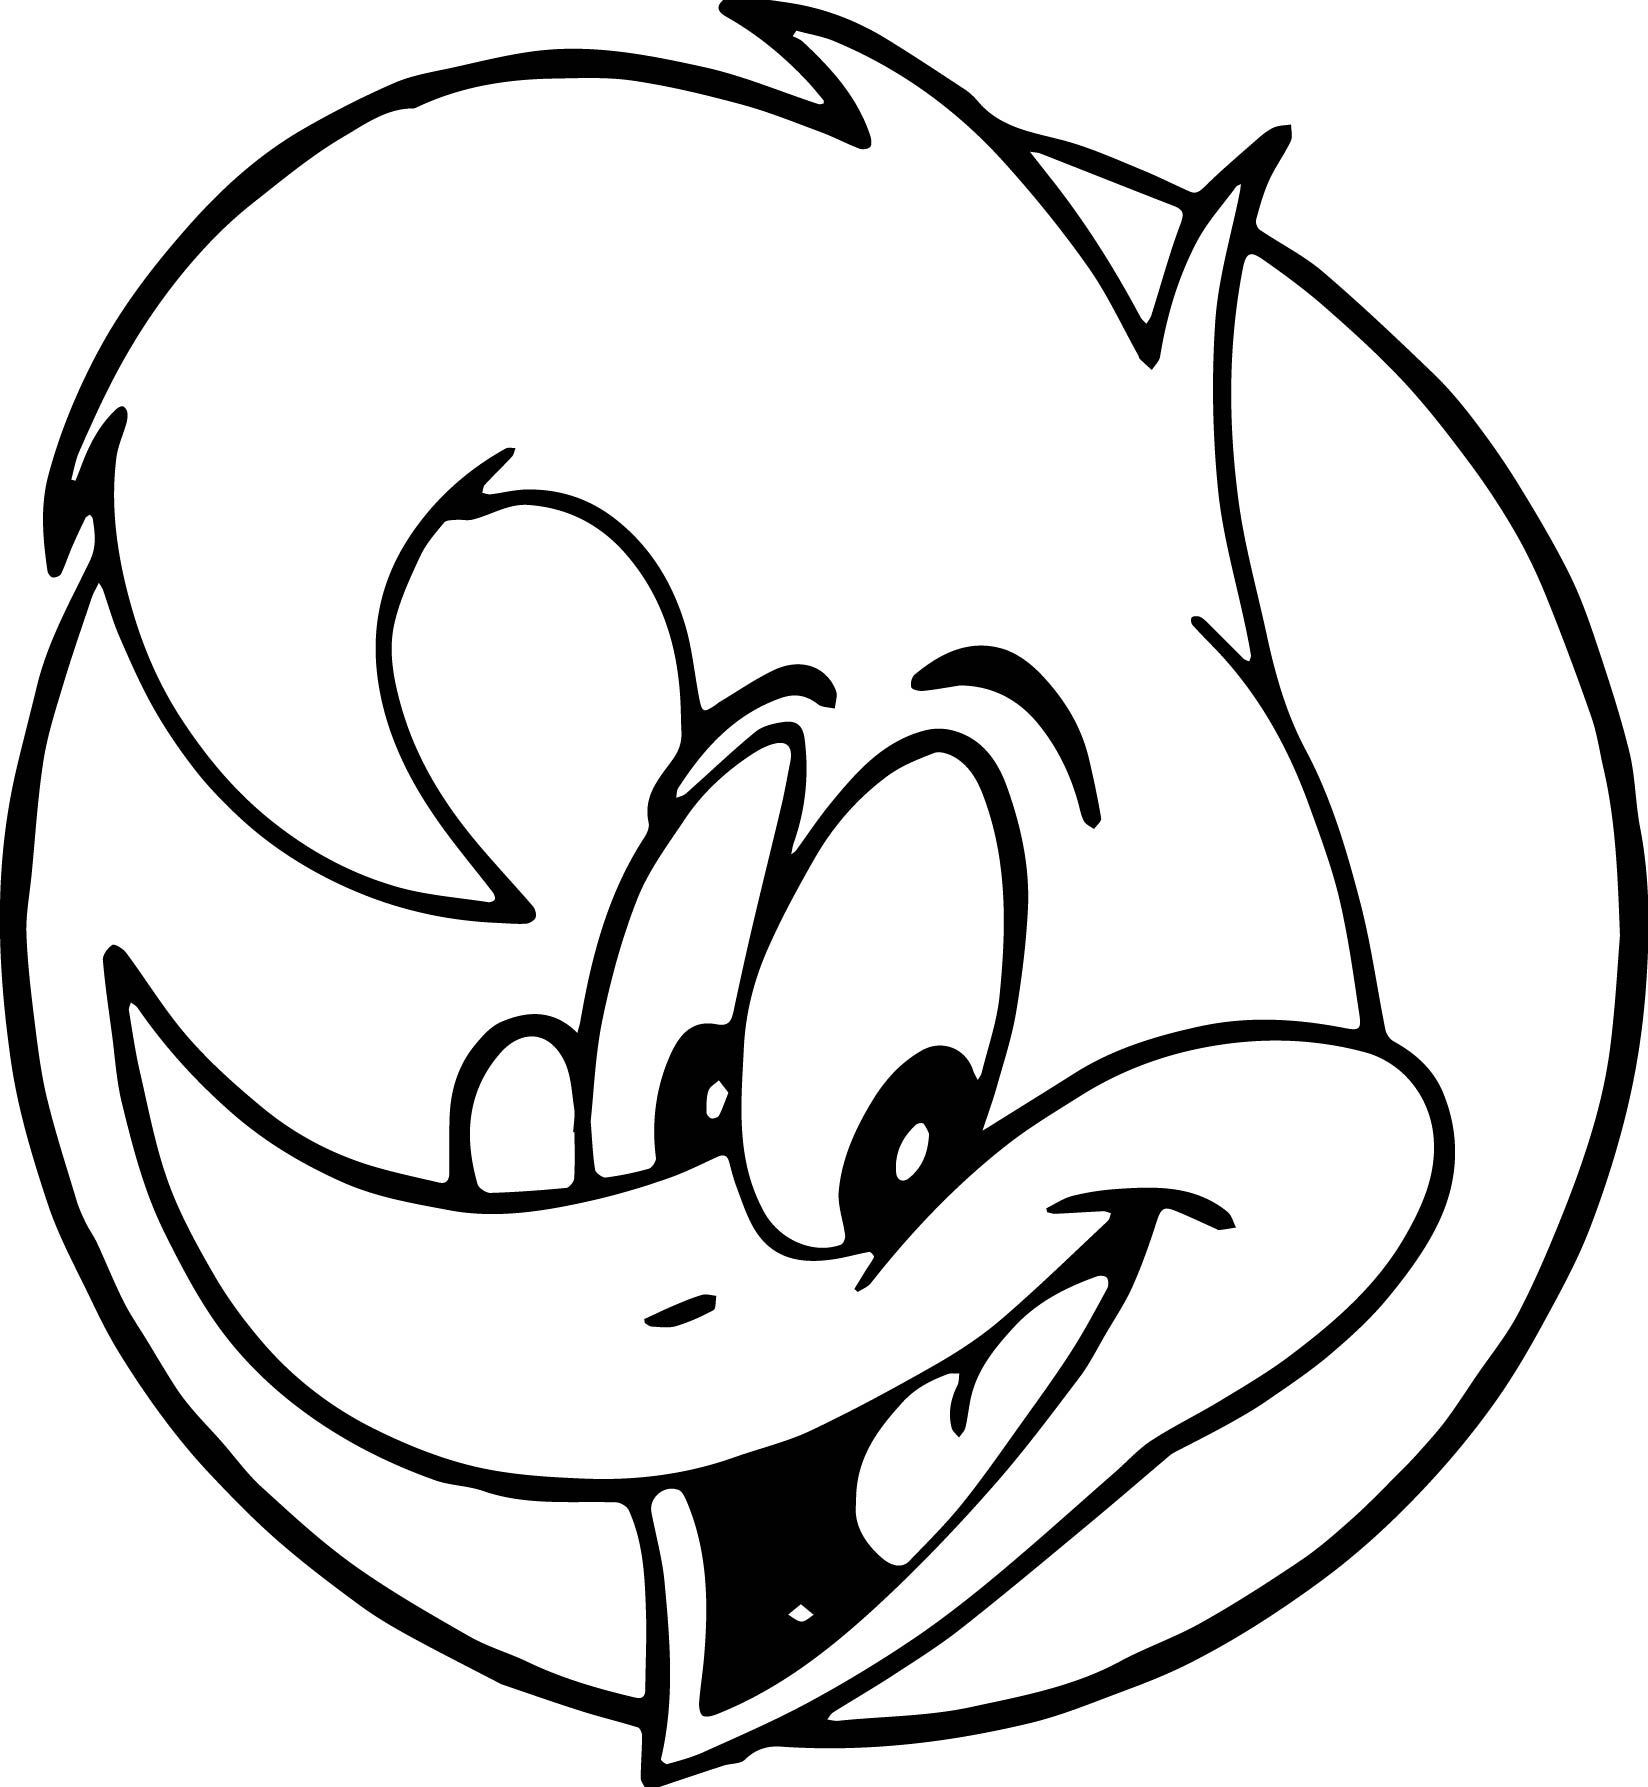 Woody Woodpecker Face Coloring Page | Wecoloringpage.com